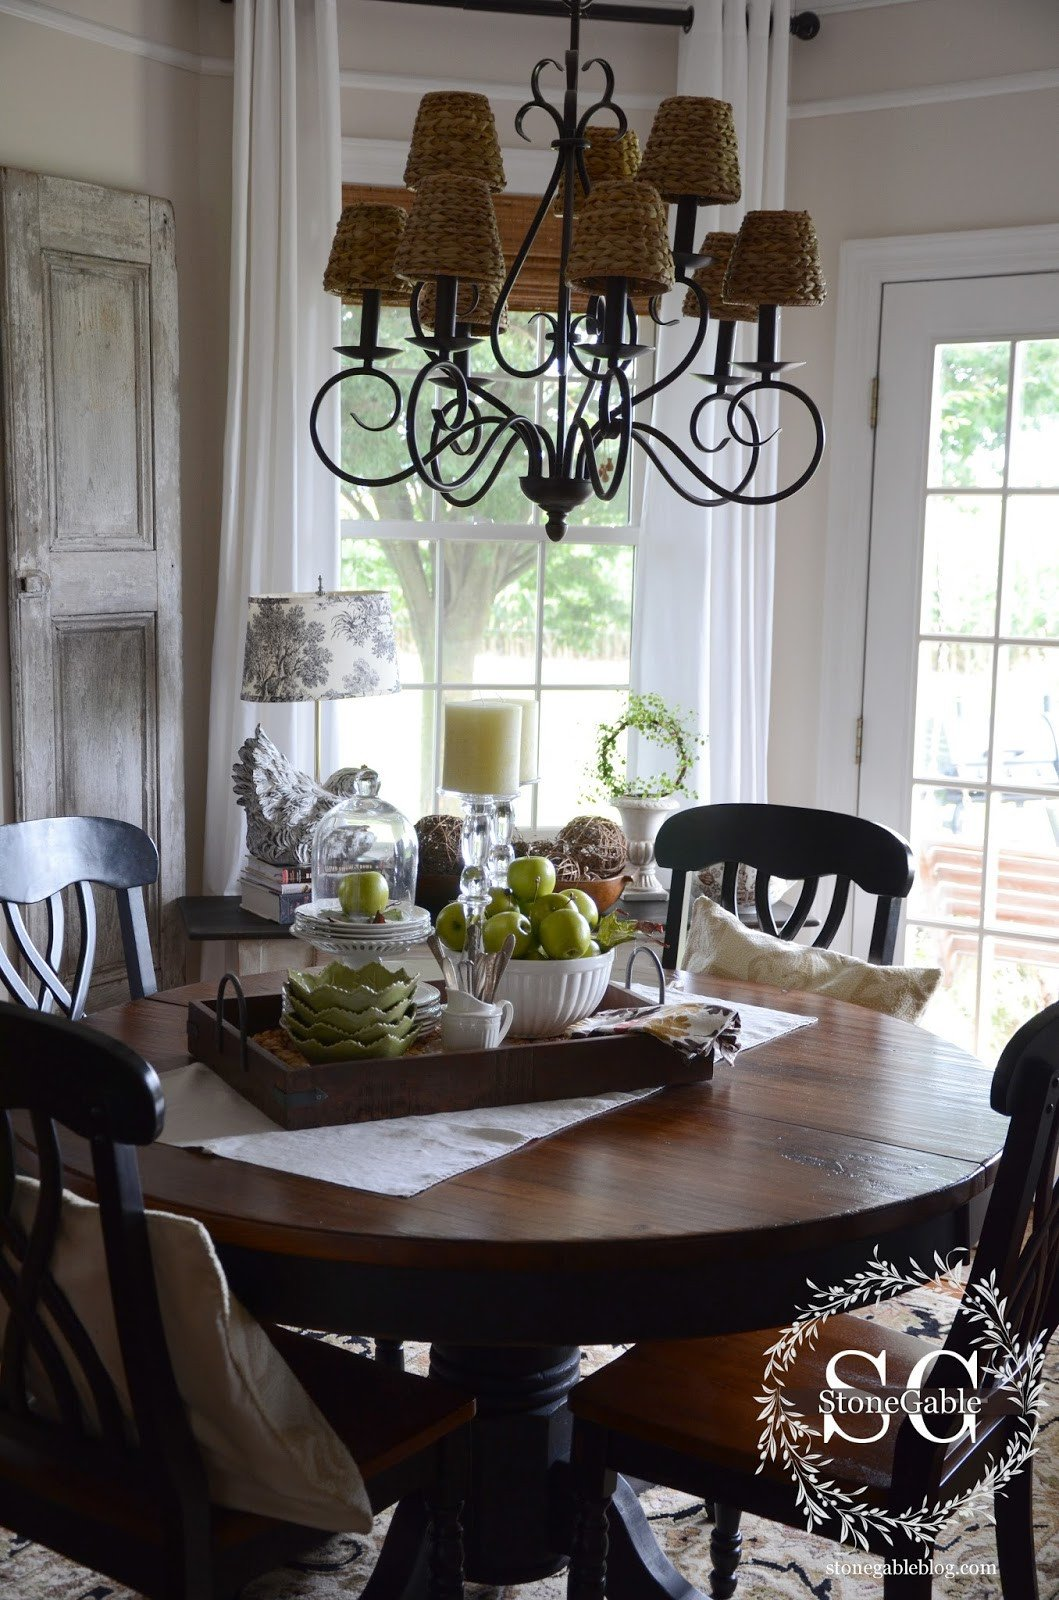 Decor for Dining Room Tables Awesome Dining Table Decor for An Everyday Look Tidbits&twine